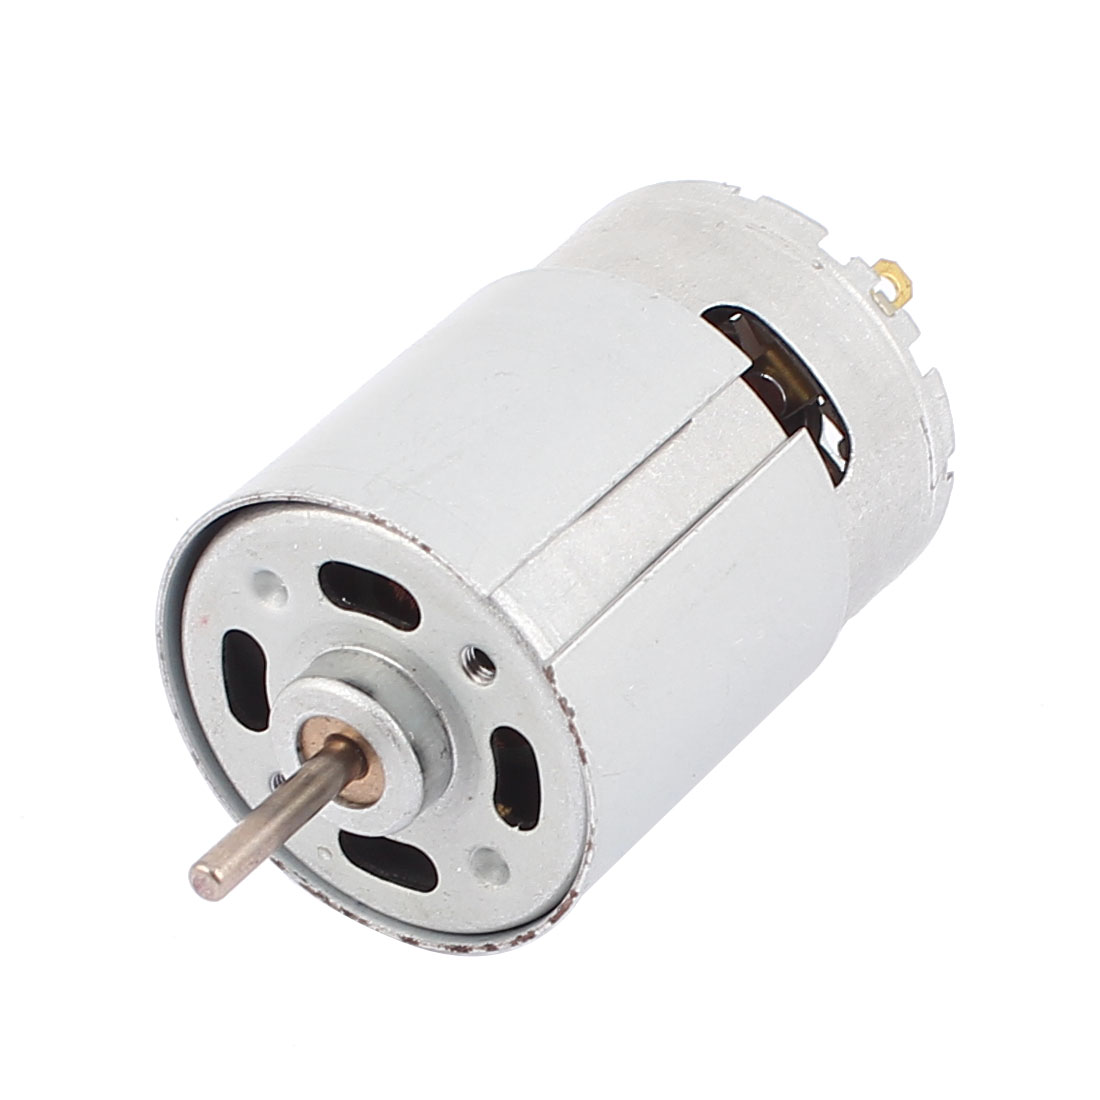 6-12V 4000-6000RPM 3mm Dia Round Shaft 38mm Cylindrical Magnetic Electric Micro DC Motor